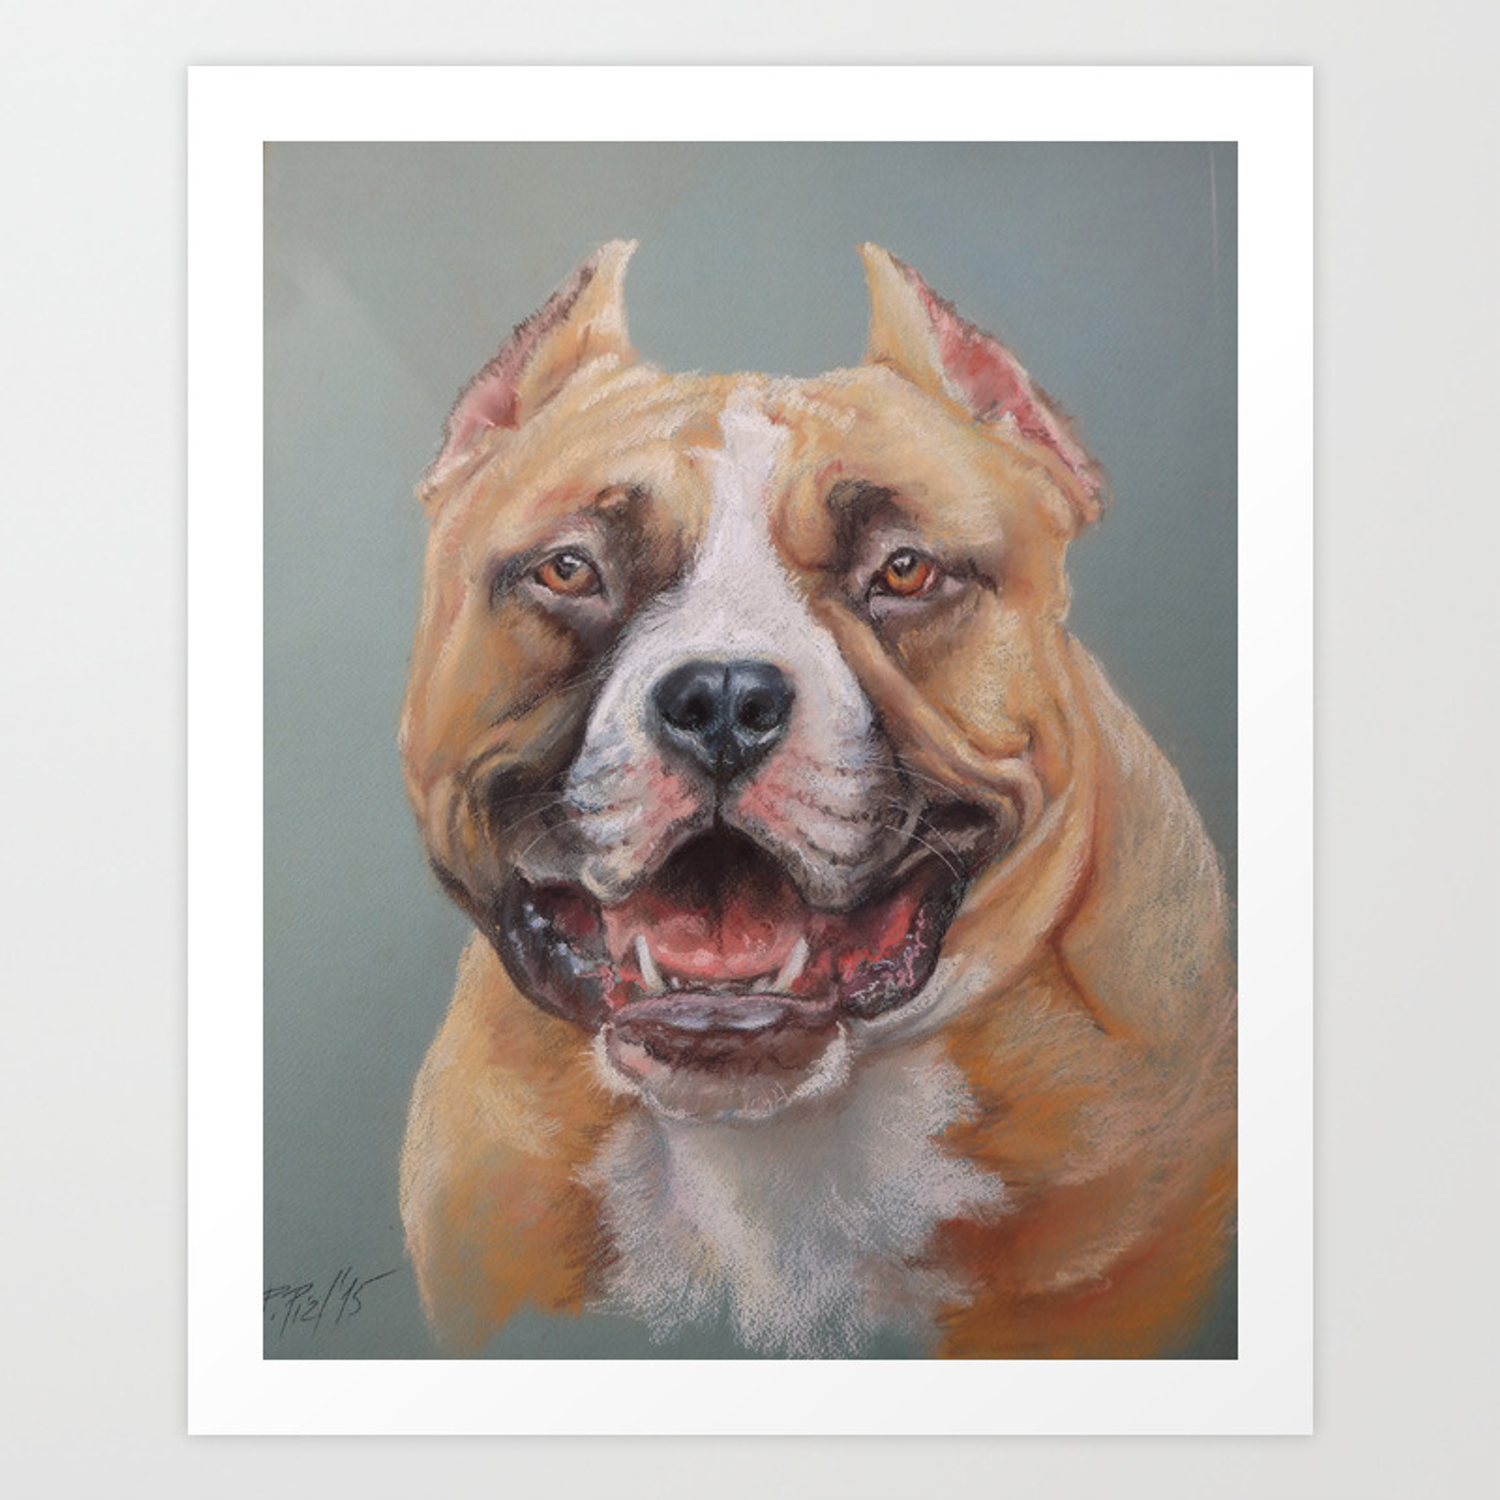 Happy Dog Smiling Amstaff Face Cute Pet Portrait Pastel Drawing Decor For Dog Lover Art Print By Canisart Society6